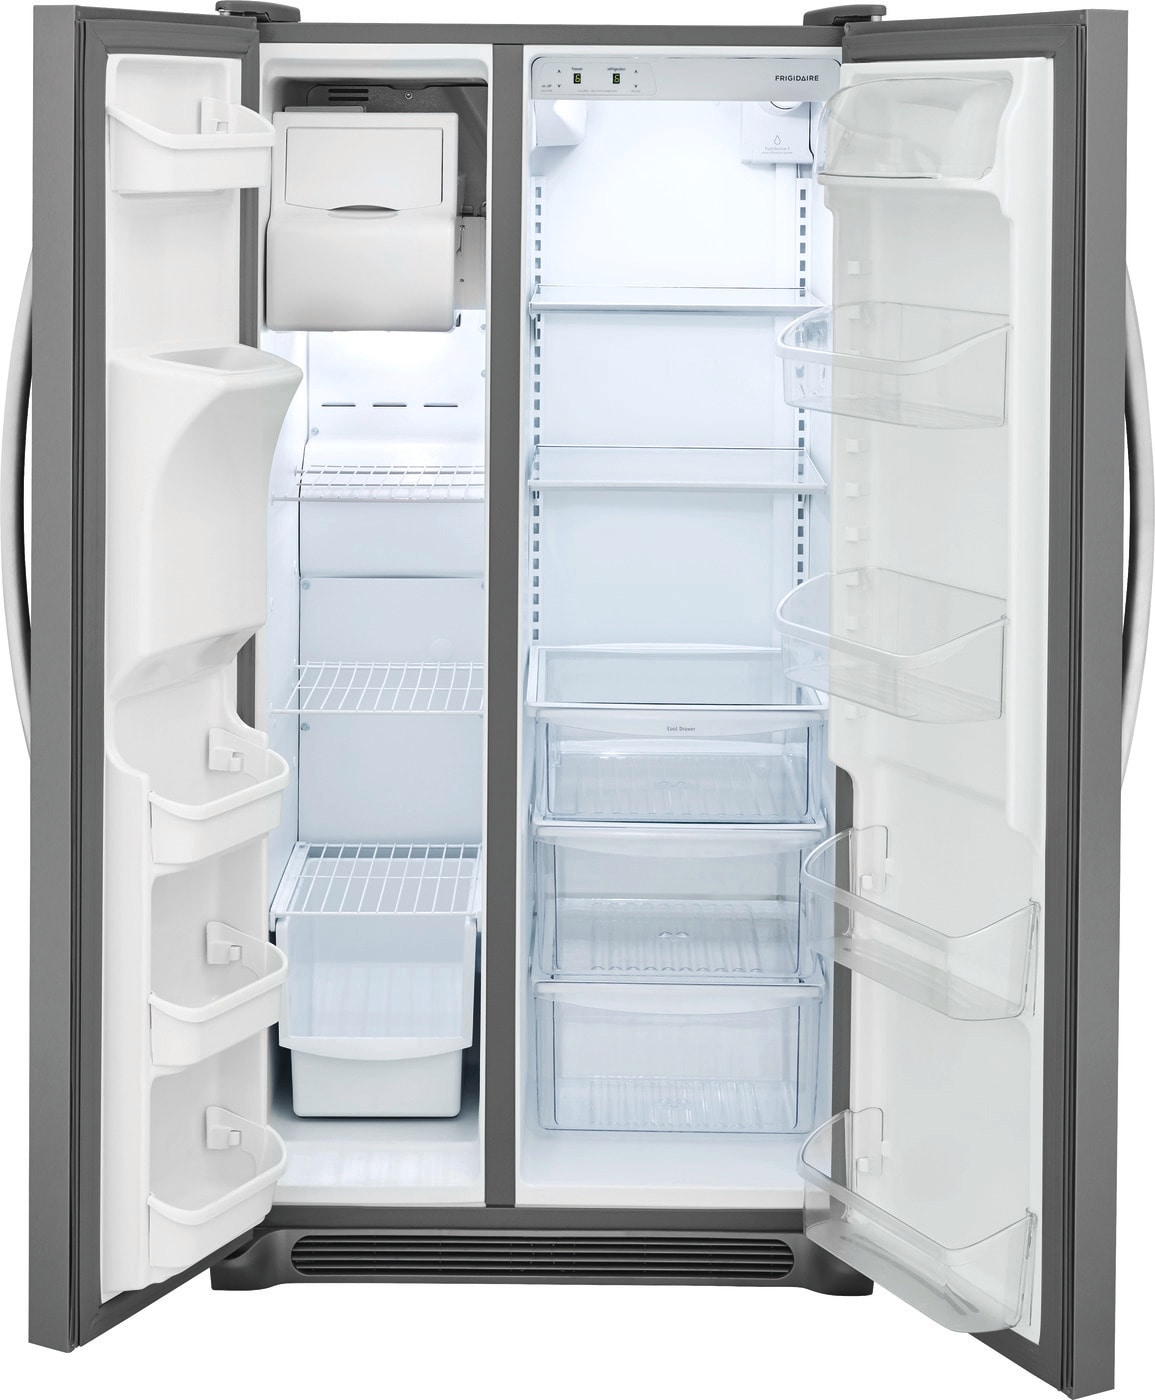 22.1 Cu. Ft. Side-by-Side Refrigerator Stainless Steel FFSS2315TS